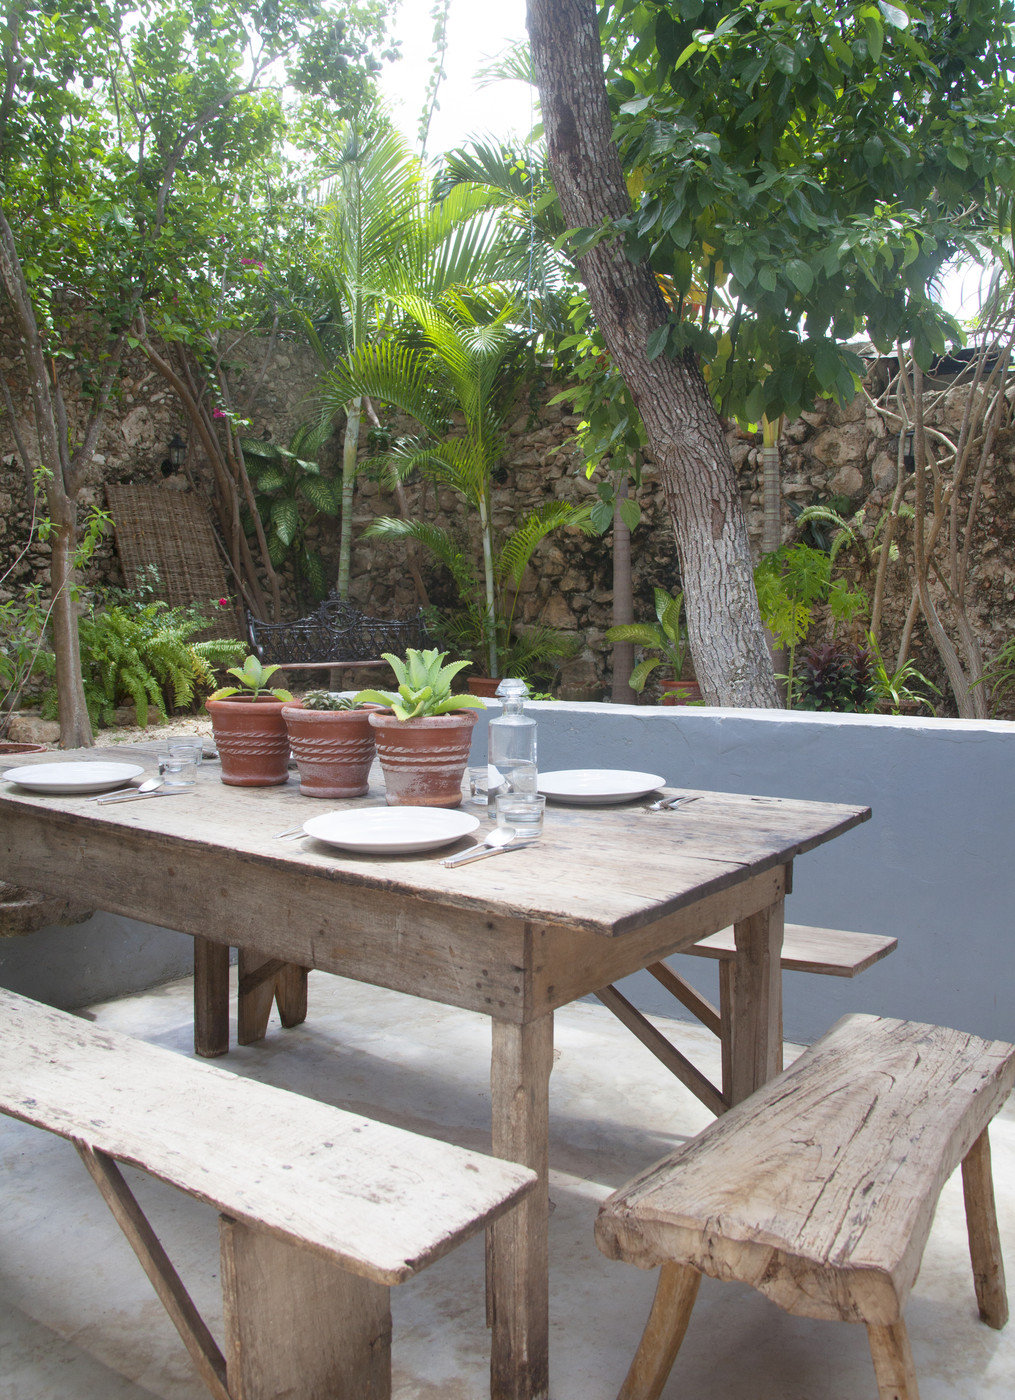 Outdoor dining area with tropical plants